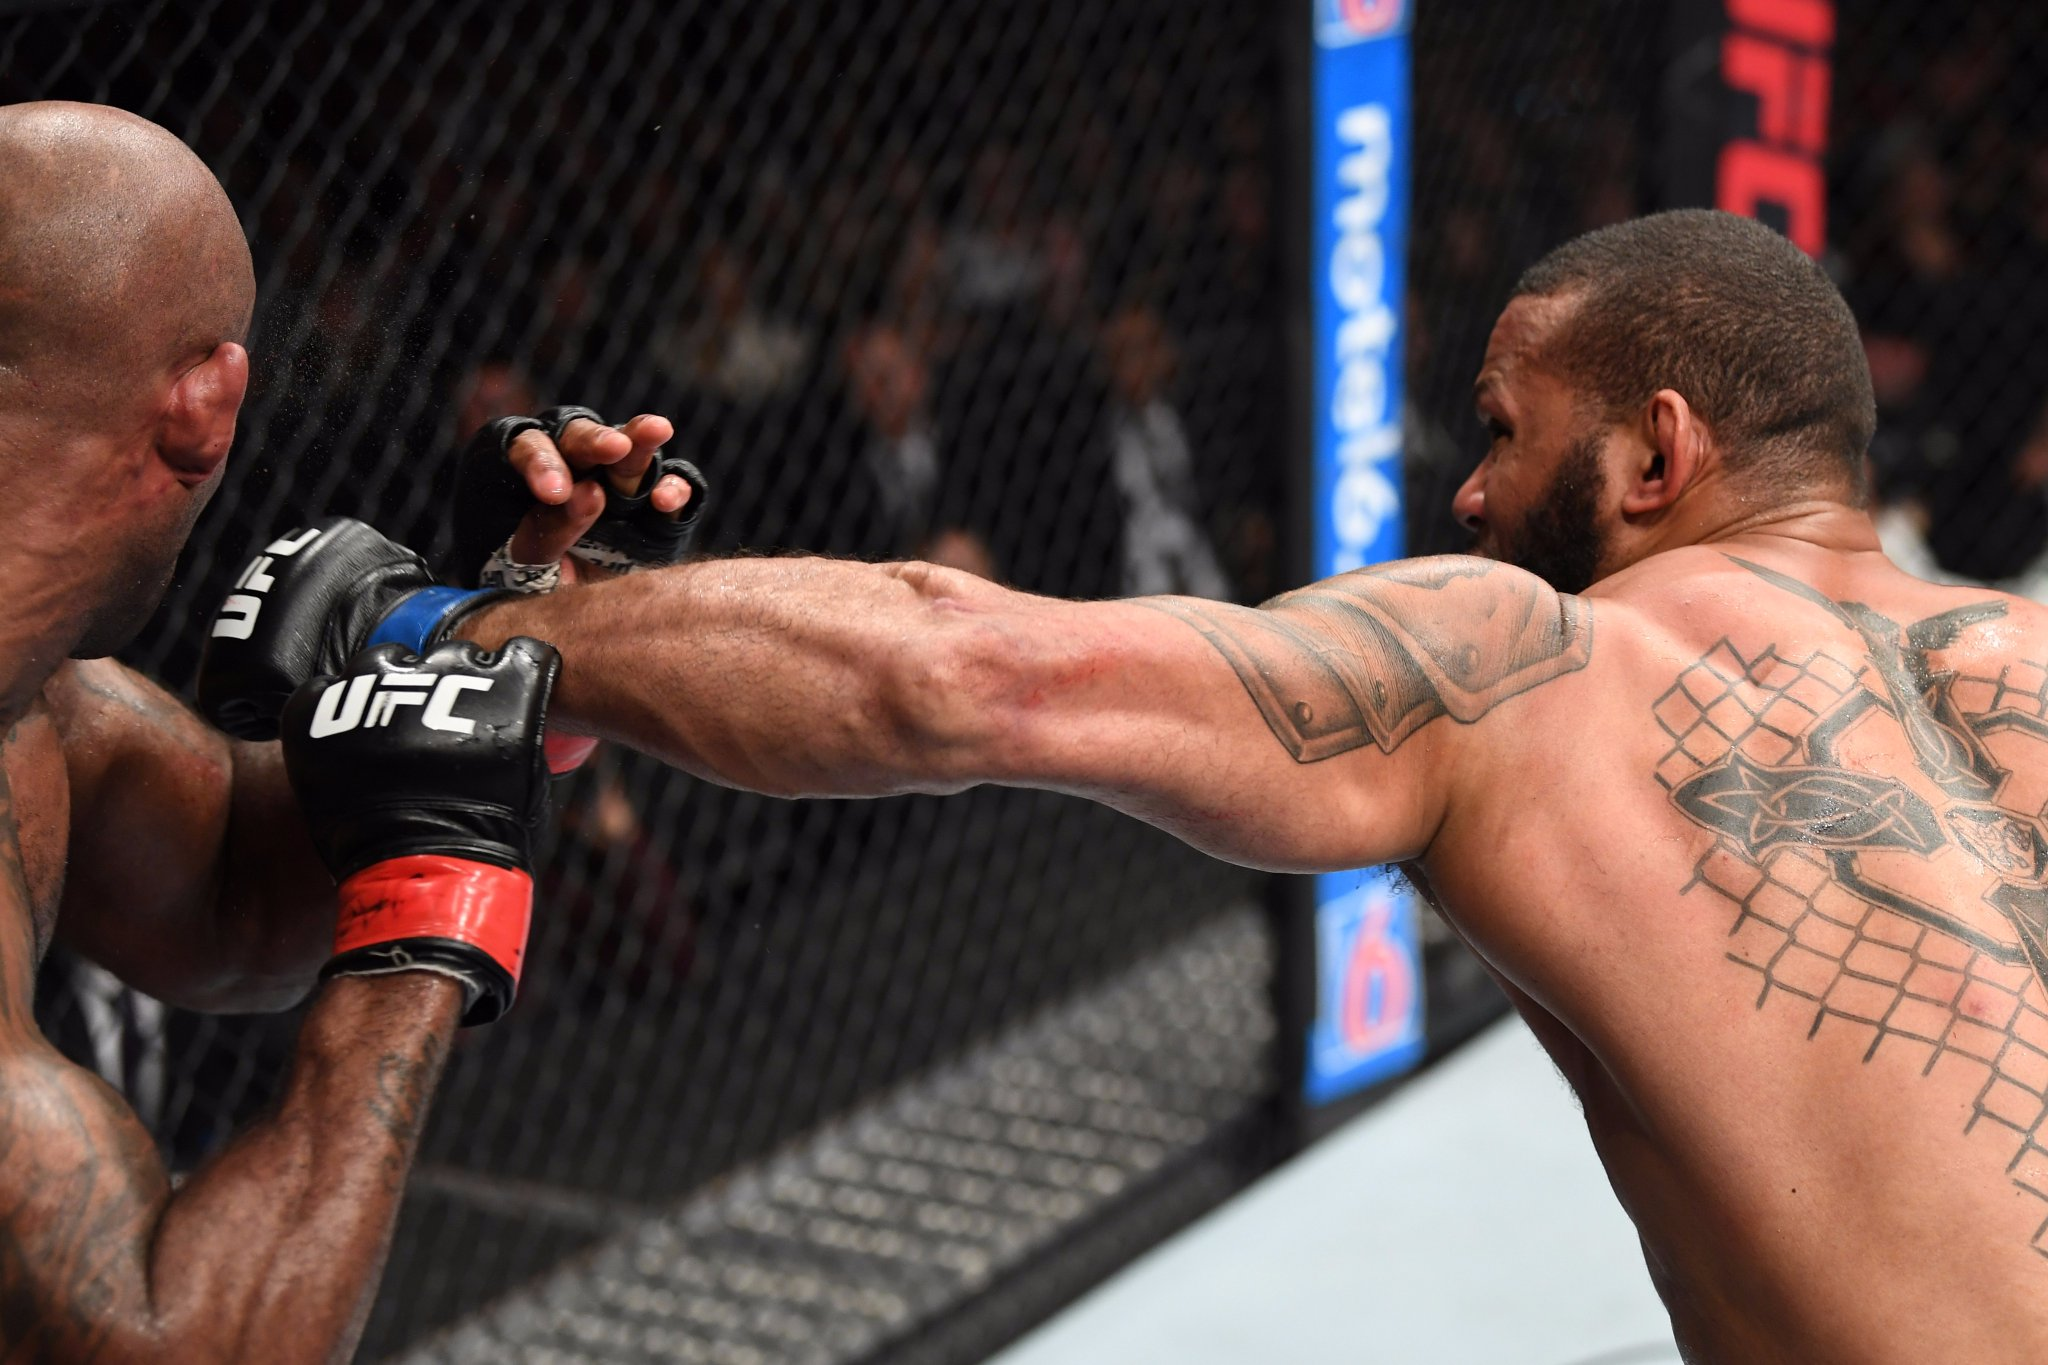 UFC 231 'Holloway vs. Ortega' Results - Thiago Santos Flattens Jimi Manua in the Wildest Fight of the Year -